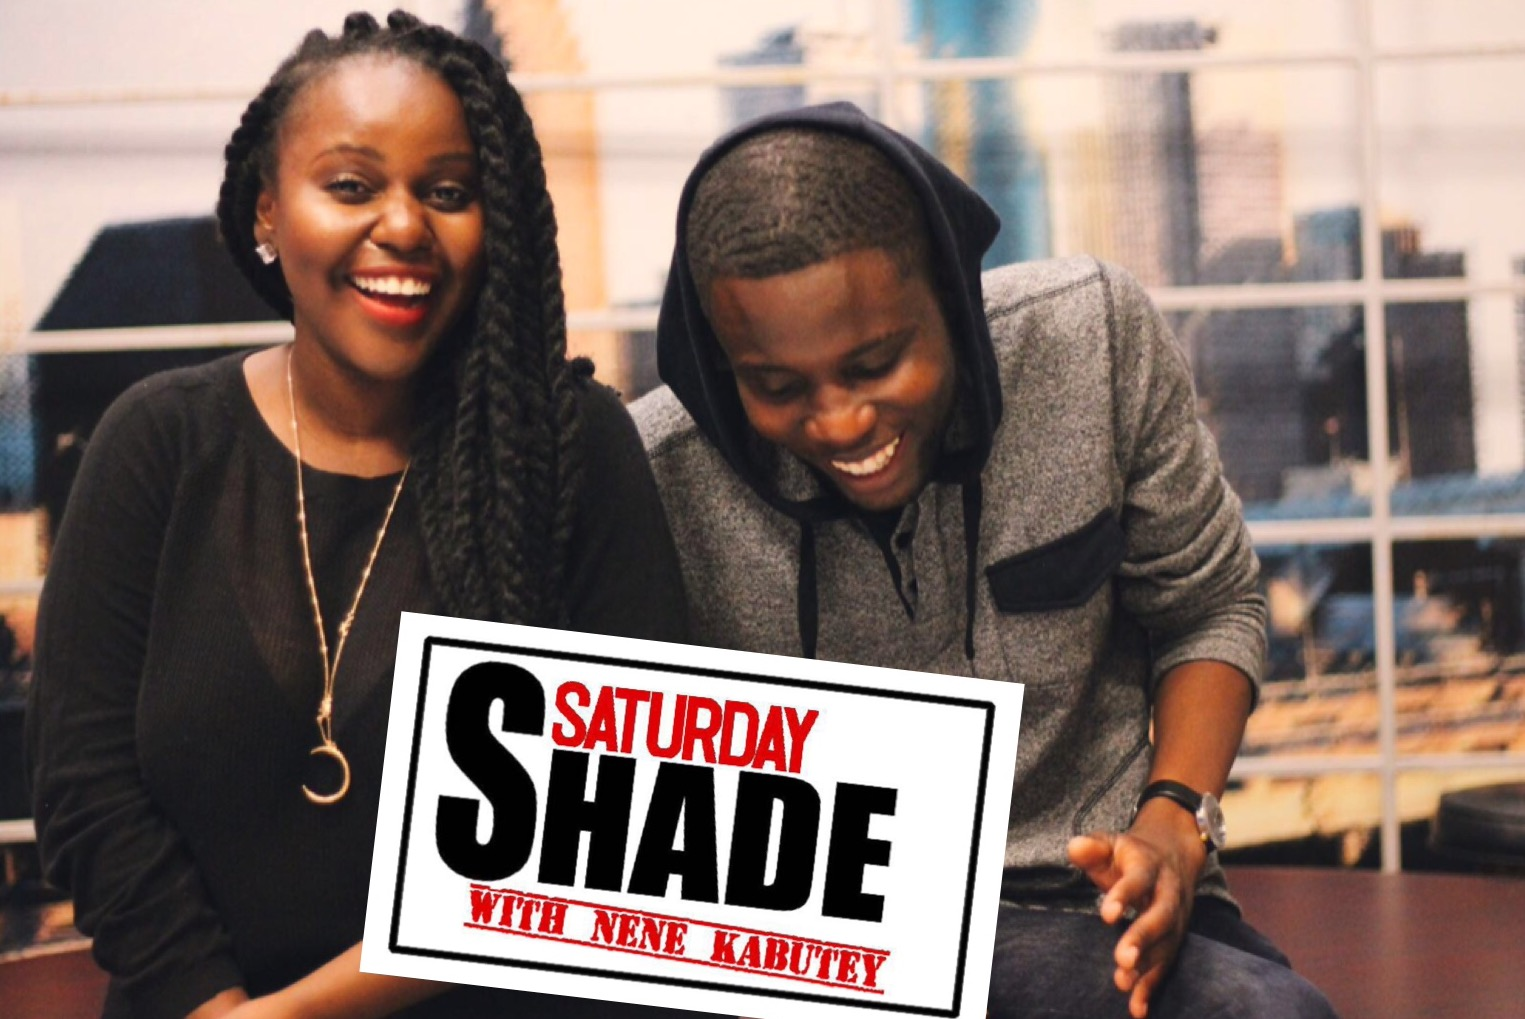 the Saturday shade with nene kabutey is a funny and entertaining podcast